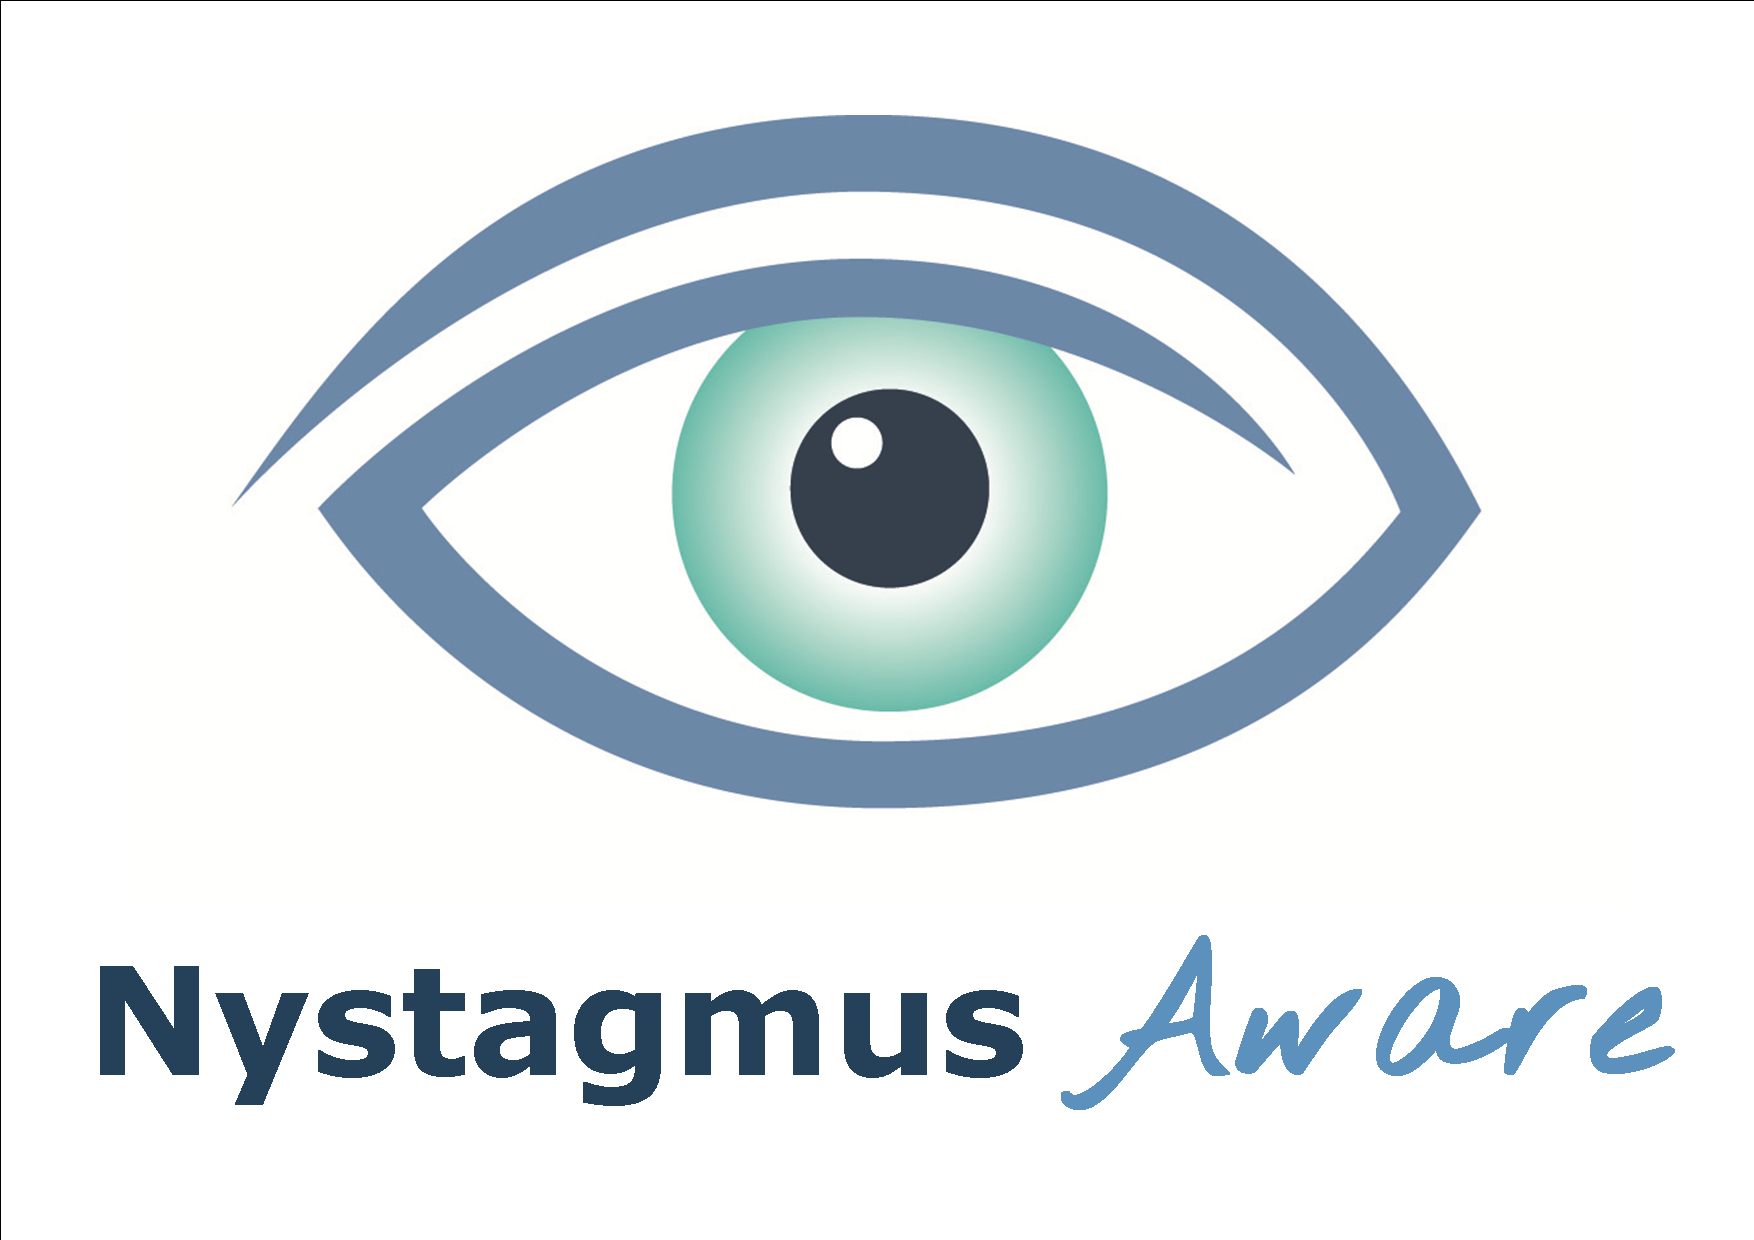 The eye logo of the Nystagmus Network and the words nystagmus aware.